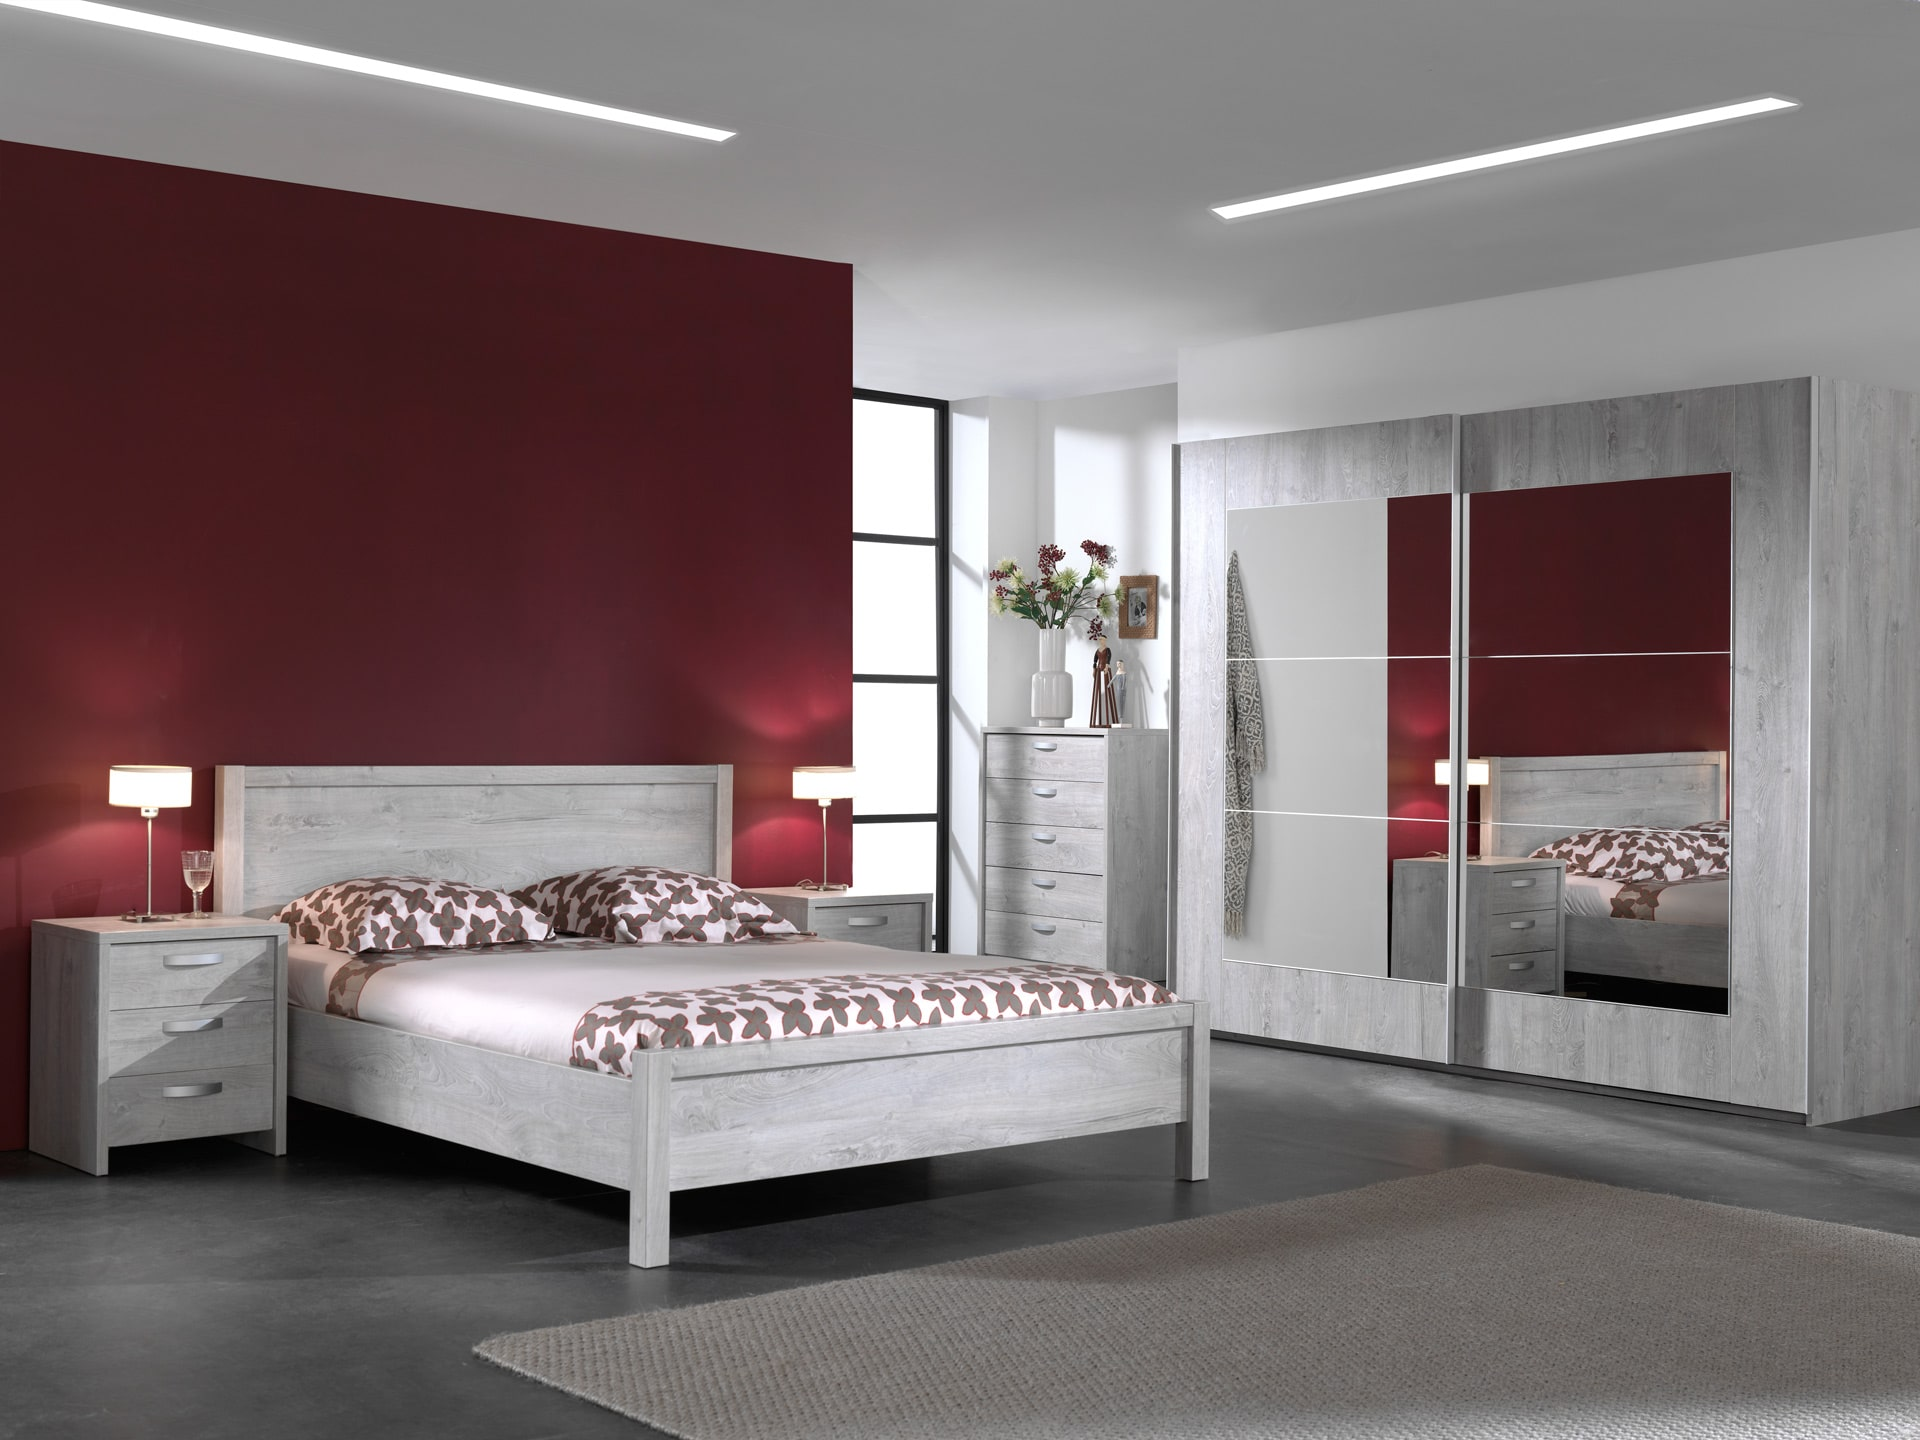 meubles de rangement pour la chambre blog matelpro. Black Bedroom Furniture Sets. Home Design Ideas